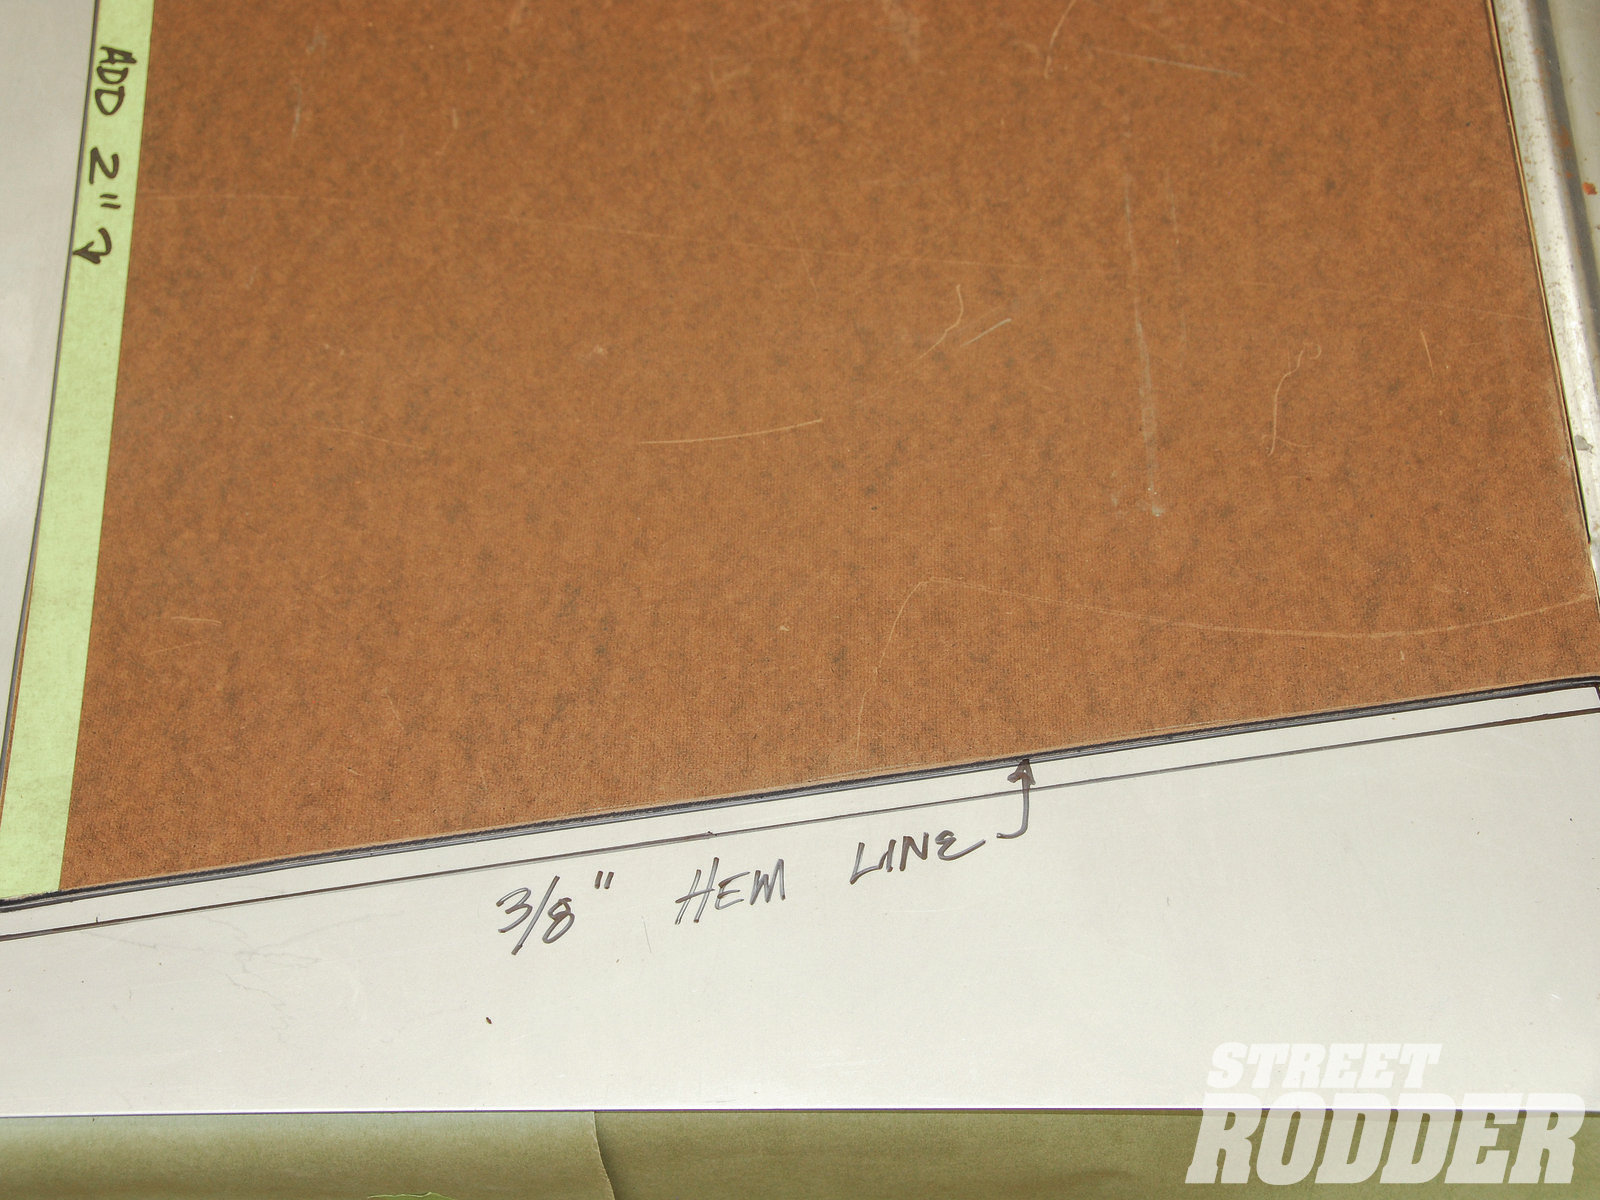 16| Here you can see the notation for adding an additional 3/8 inch for a hem line to the front of the hood side.